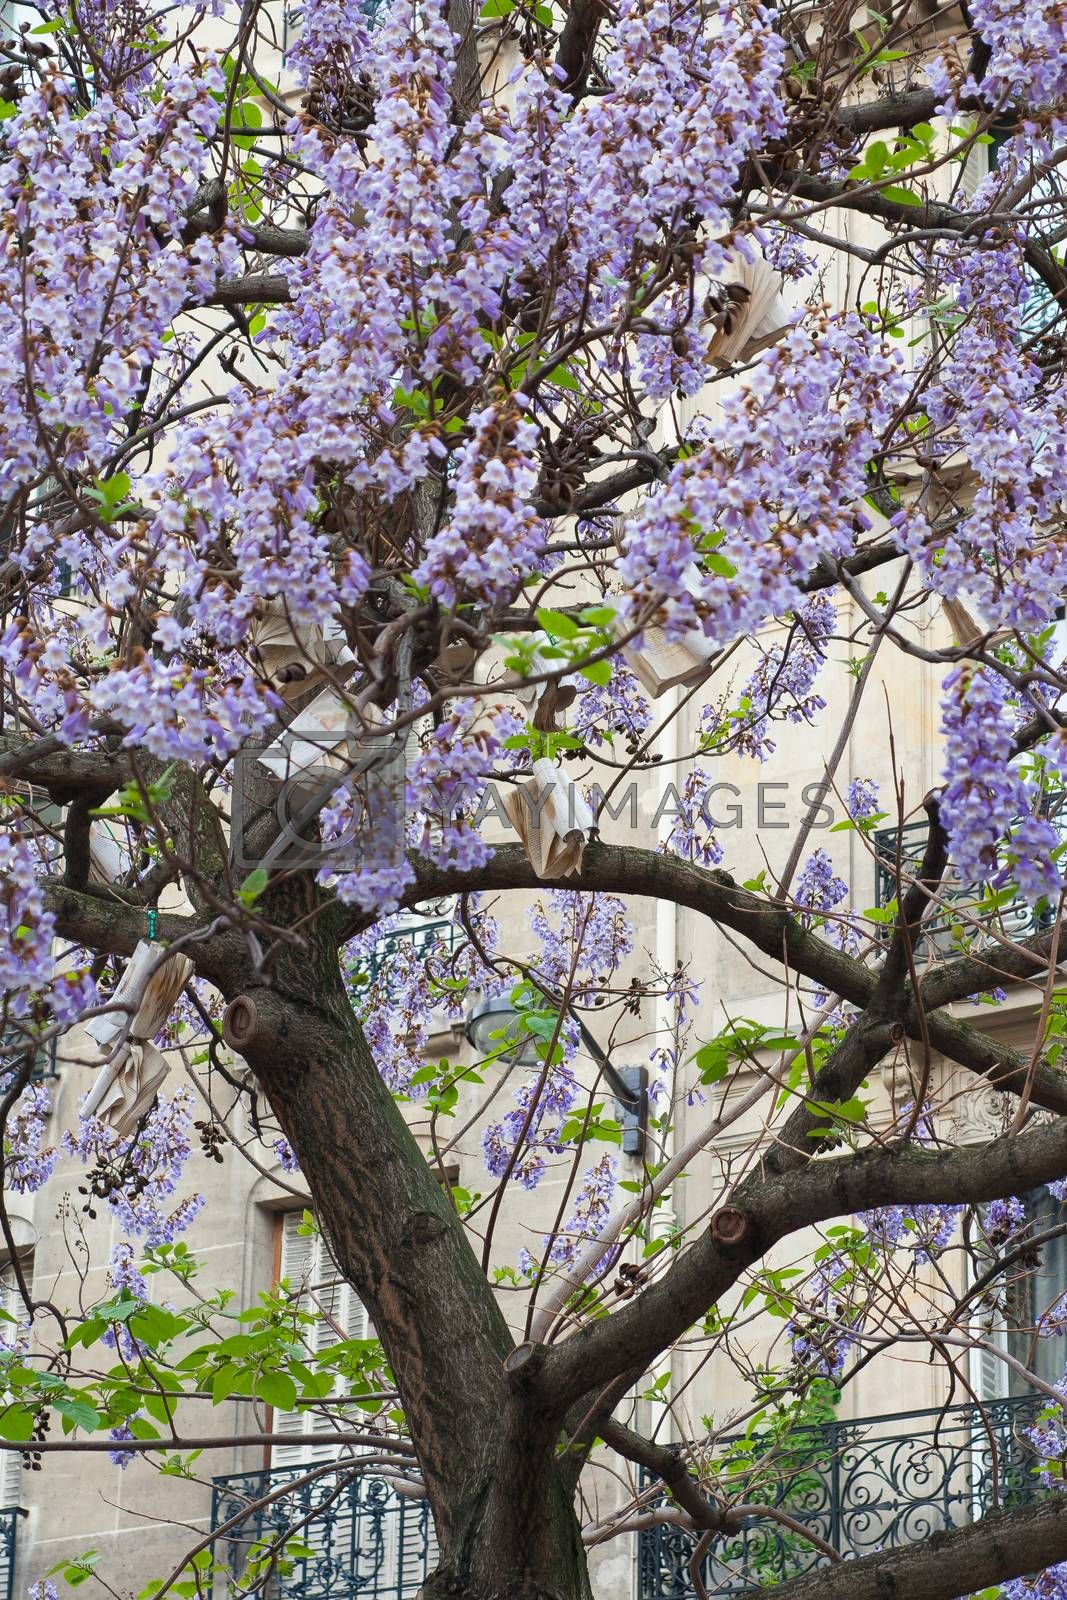 Royalty free image of Book hang on tree with blue flowers France, Paris by sfinks